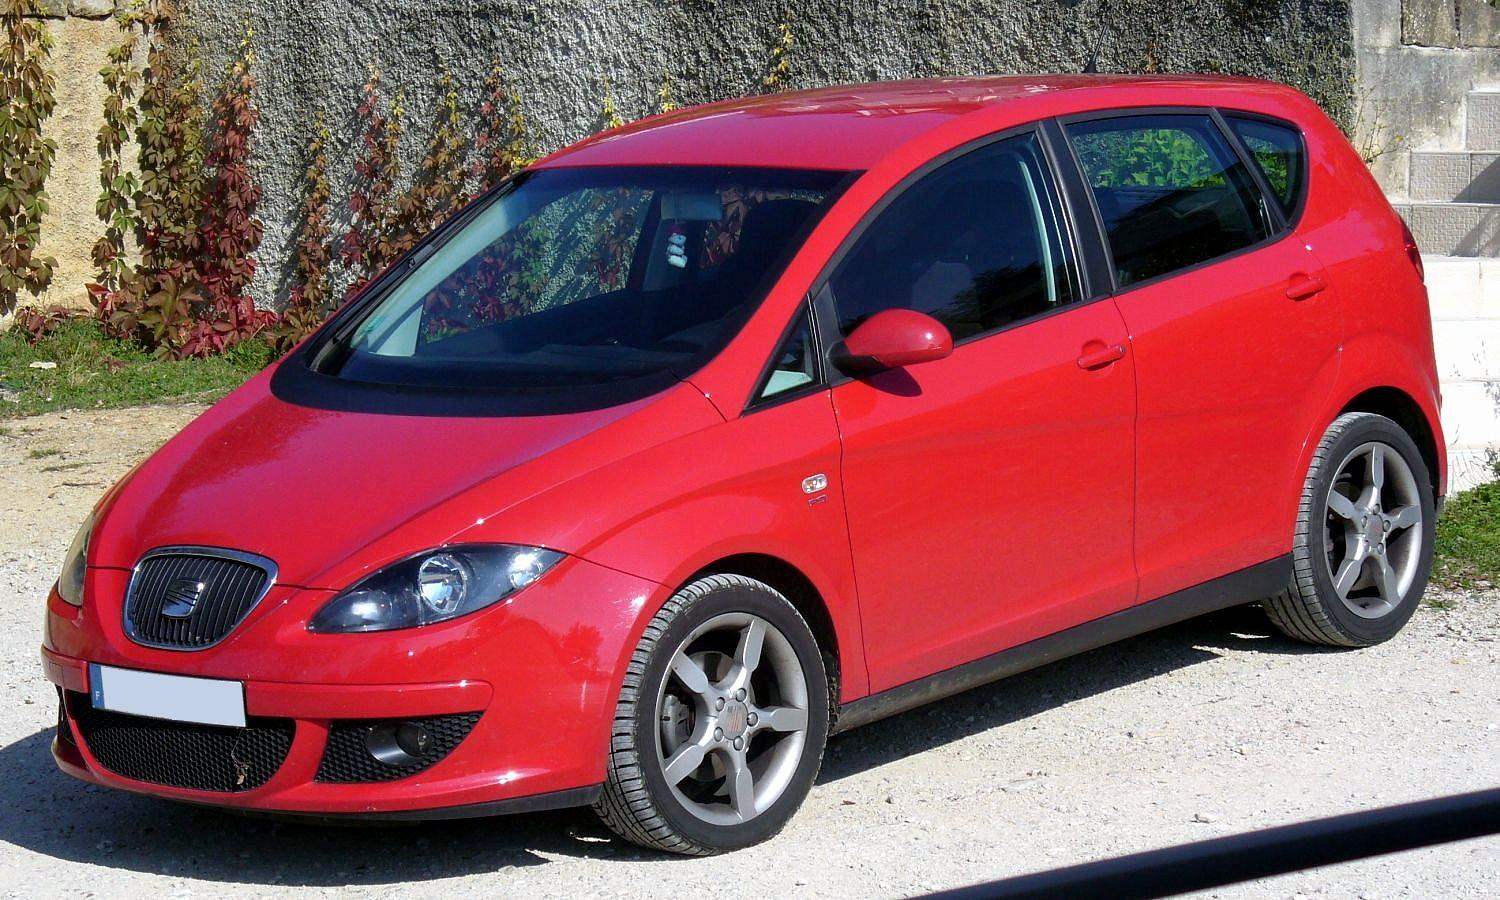 SEAT ALTEA 1.2 red